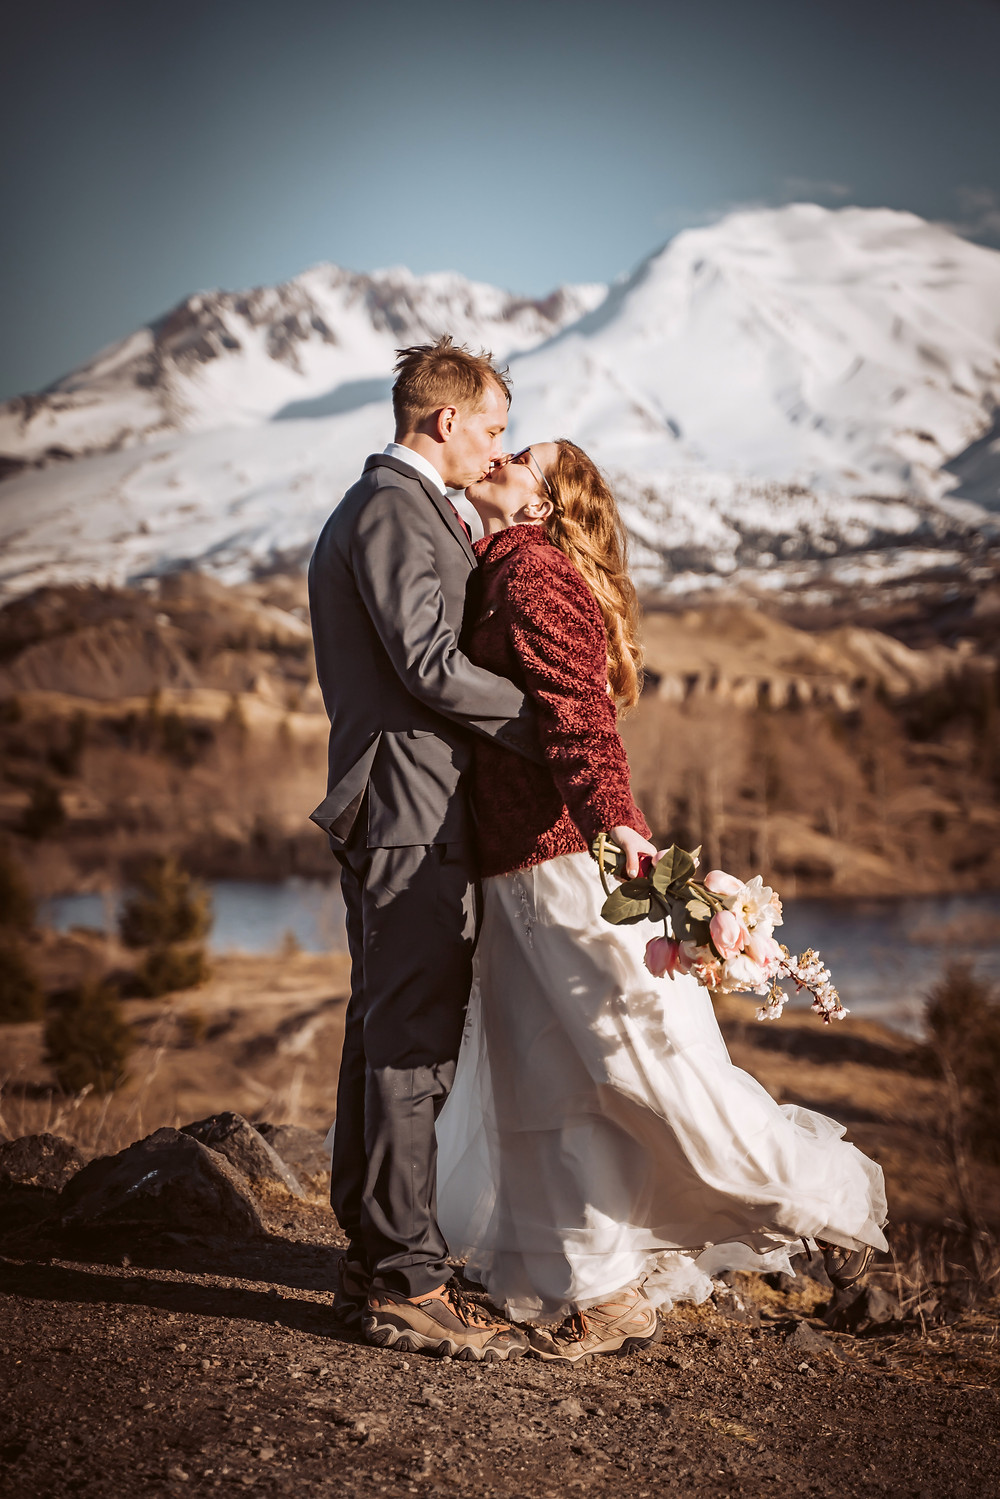 A couple in their wedding attire kissing in front of Mount St. Helens on their elopement day for their couples portion of the photos on their elopement timeline